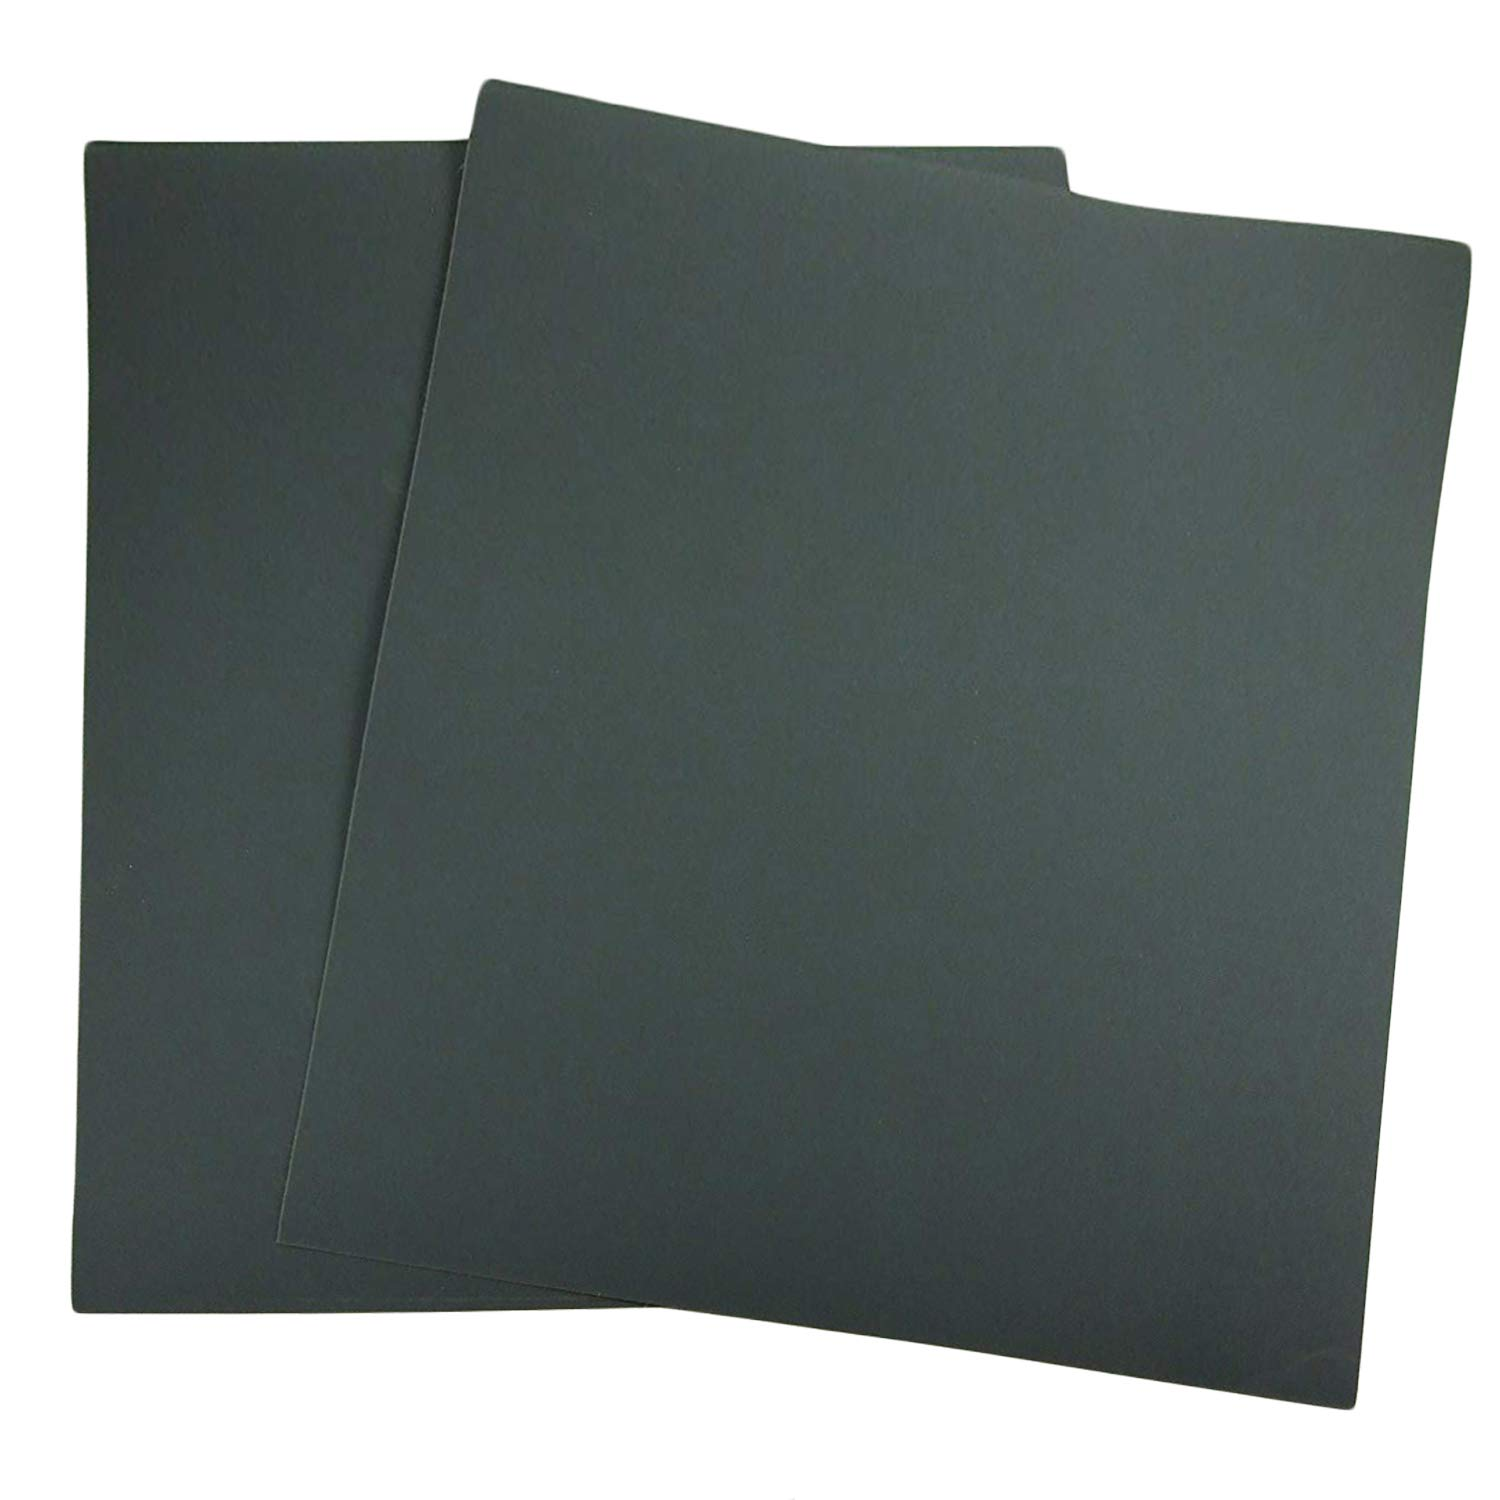 Autoly 10Pcs Wet and Dry 600 Grit Silicon Carbide Abrasive Sandpaper Sheet 11x9